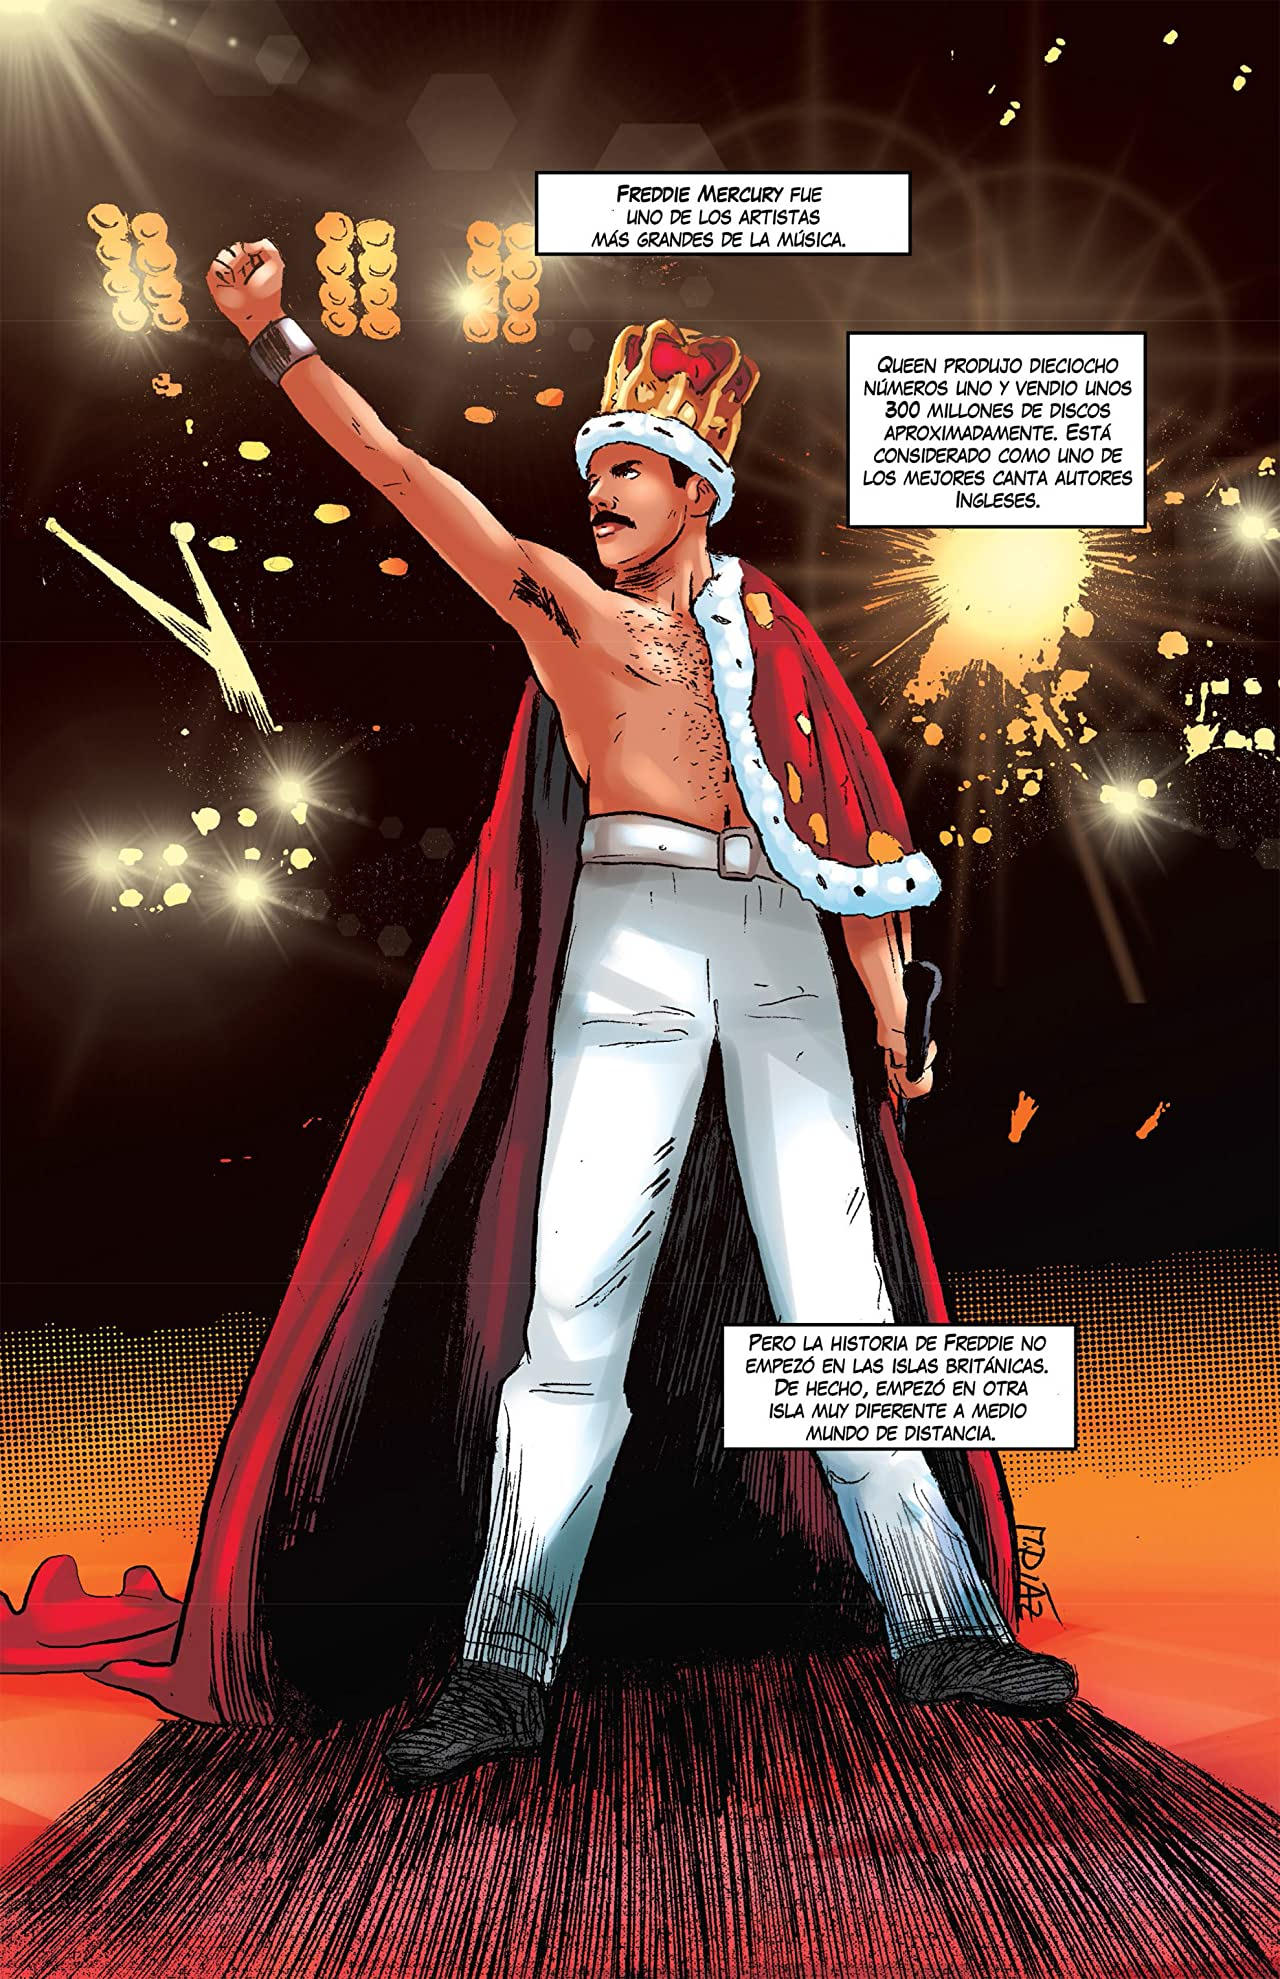 Tribute: Freddie Mercury: Spanish Edition